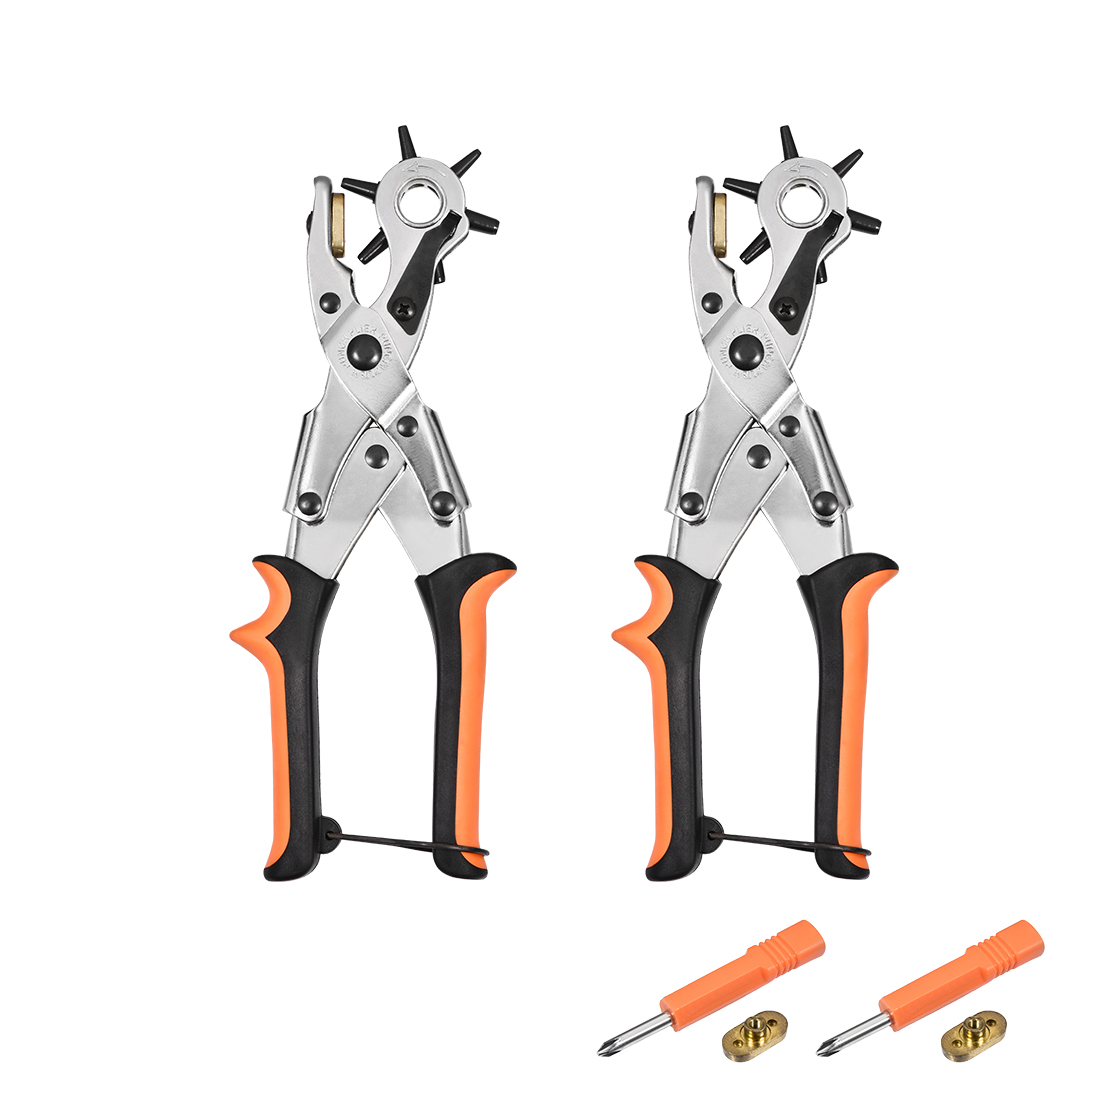 Punch Pliers 250mm Leather Round Hole Punch Tool with 6 Size for DIY Craft 2 Pcs